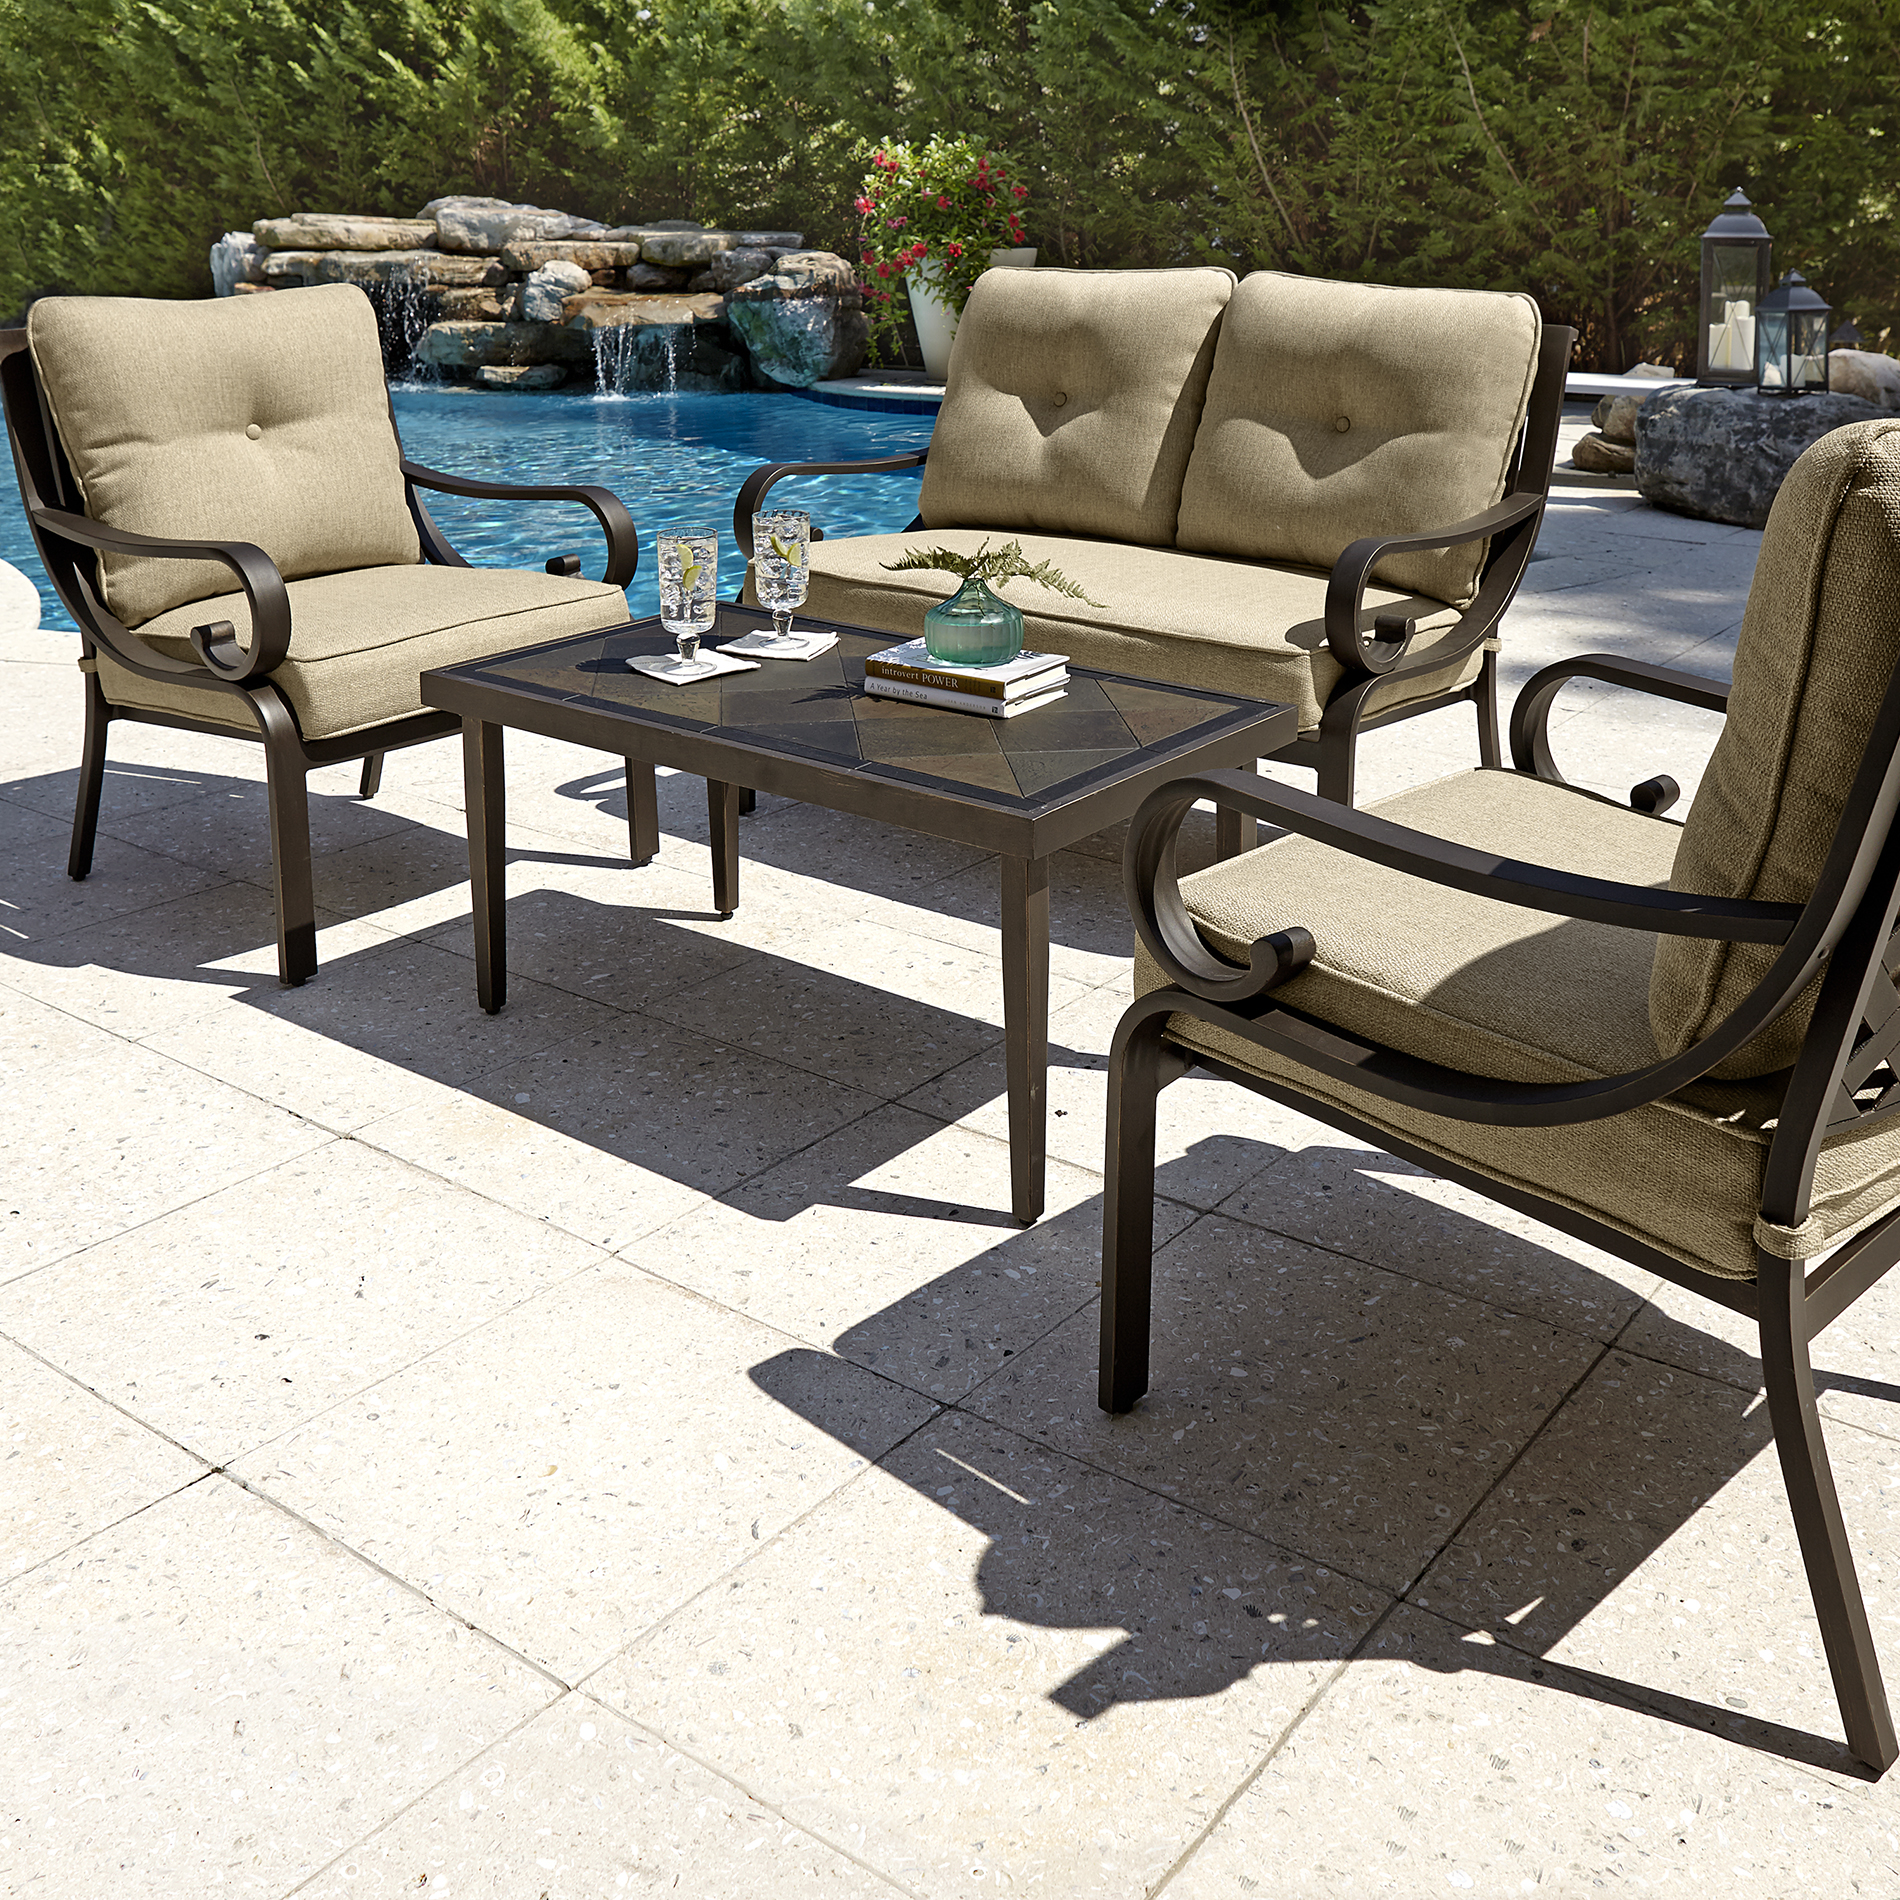 Grand Resort Aspen 4pc Cushion Seating Set with Coffee ... on Outdoor Living Ltd  id=85250